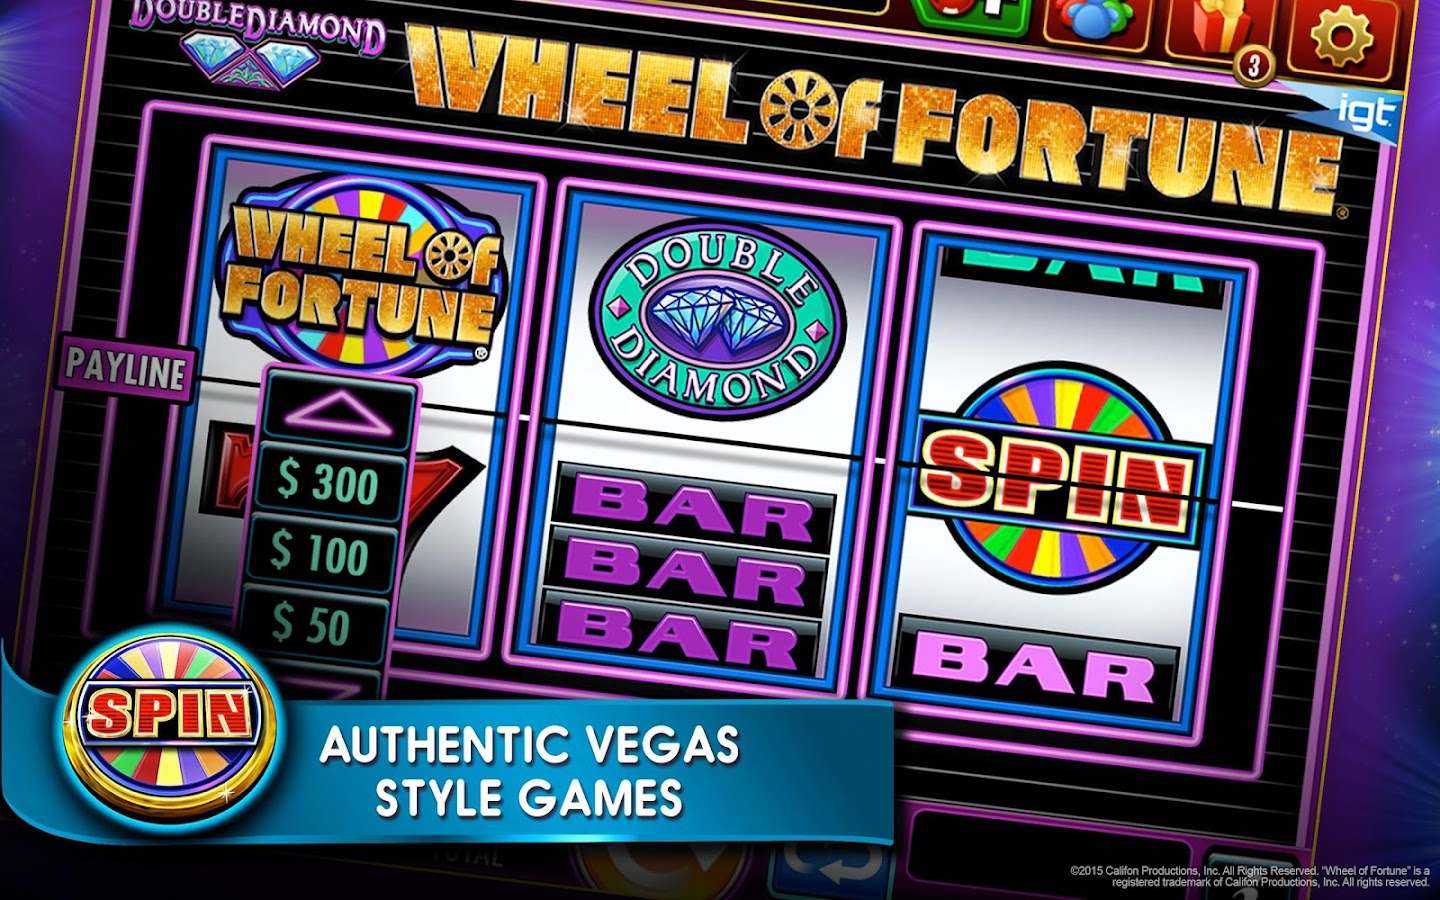 doubledown casino slot game